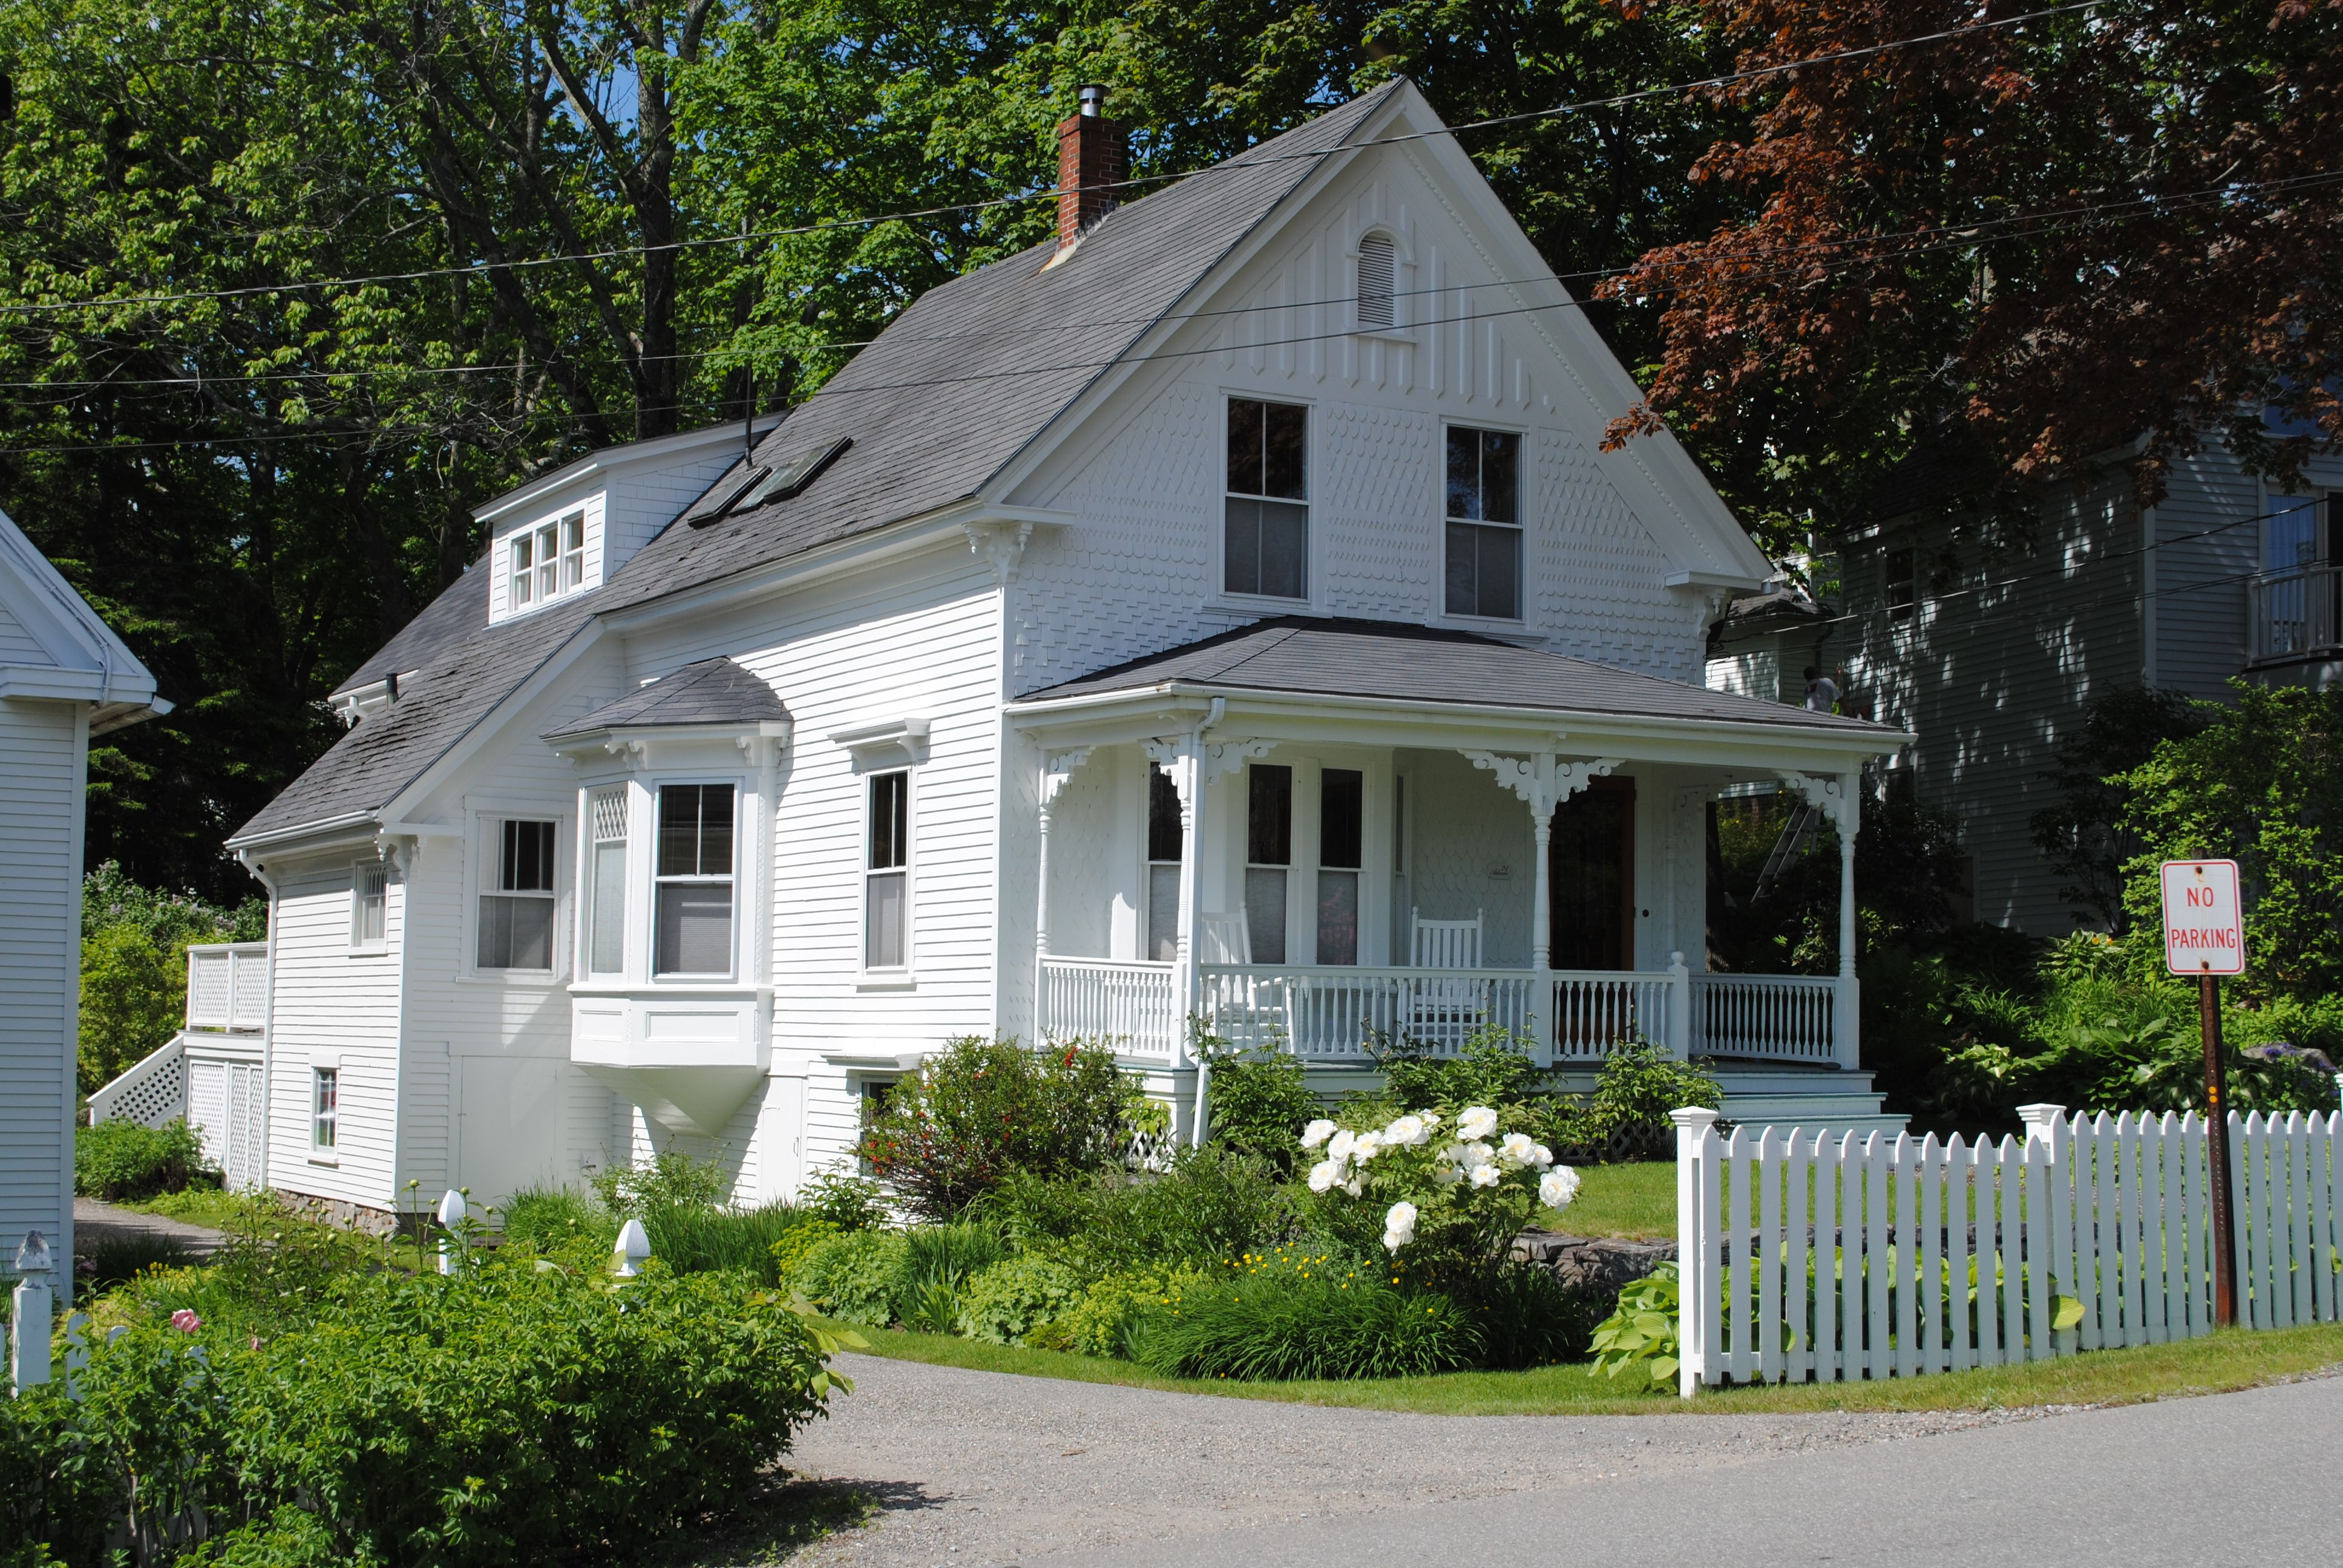 My favorite house in camden maine maine my beautiful for Camden home